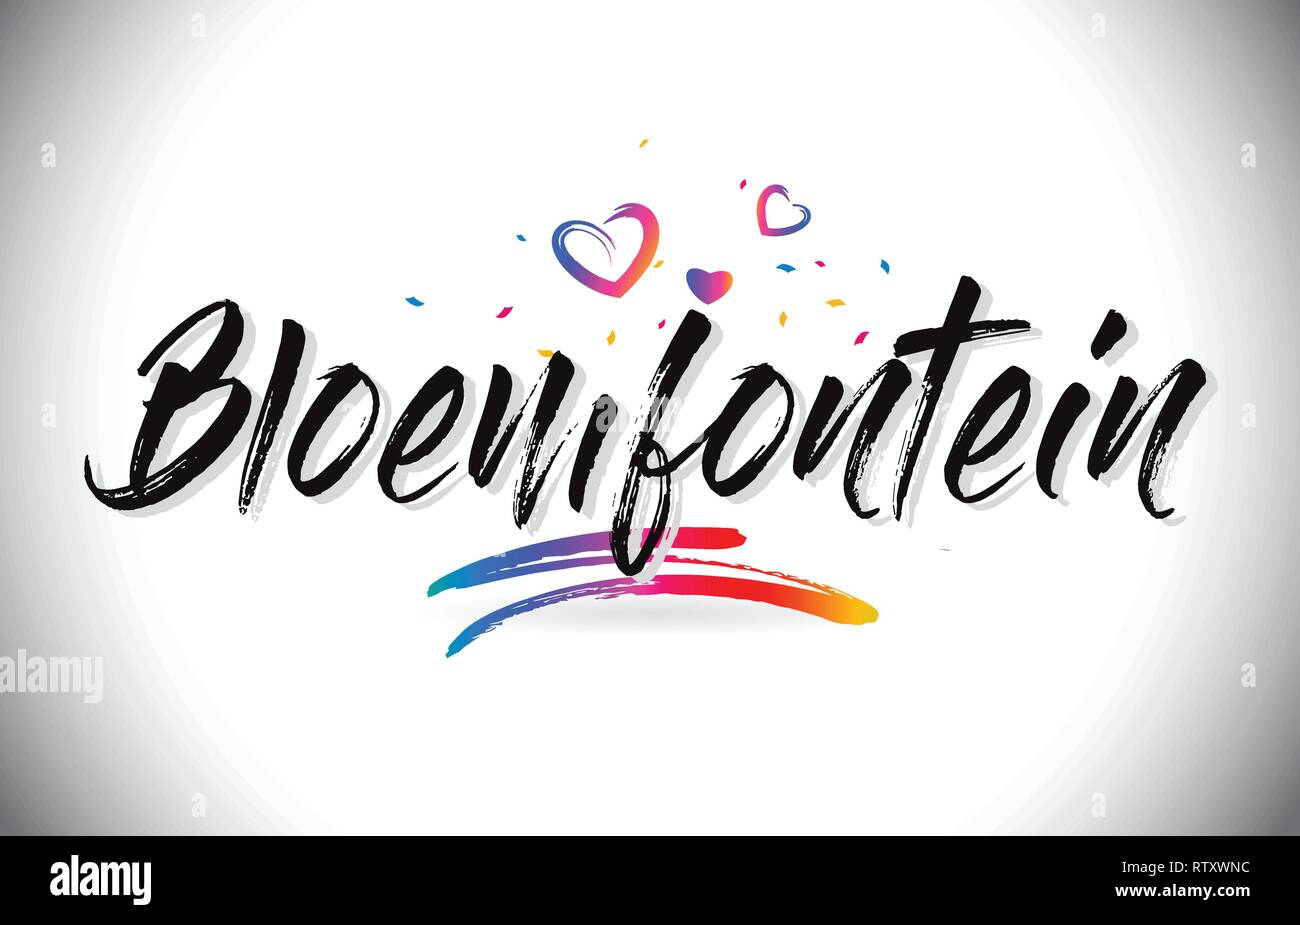 Bloemfontein Welcome To Word Text with Love Hearts and Creative Handwritten Font Design Vector Illustration. - Stock Image